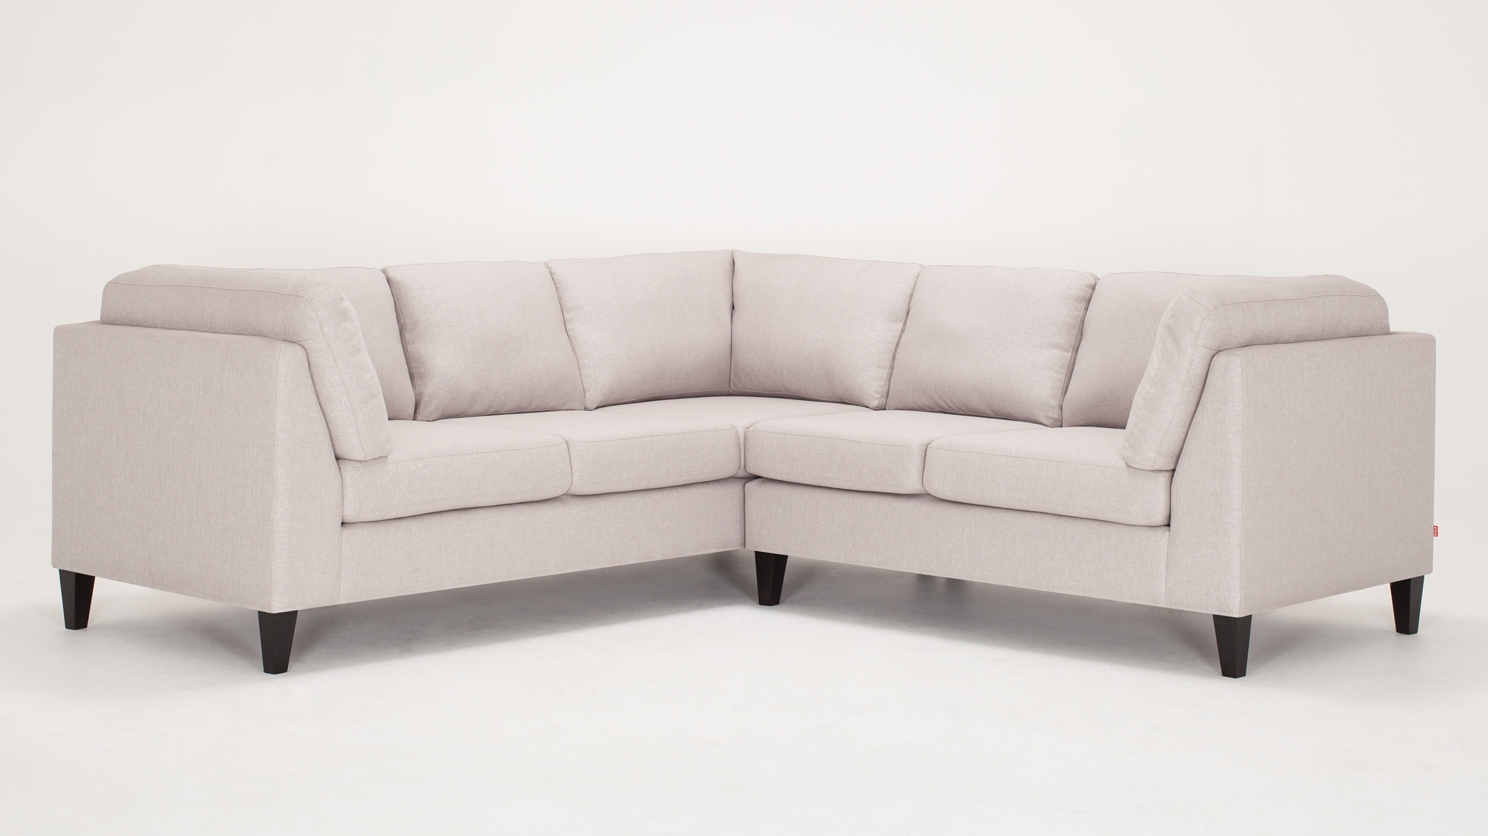 Eq3 | Salema 2 Piece Sectional Sofa – Fabric Pertaining To Eq3 Sectional Sofas (View 4 of 10)